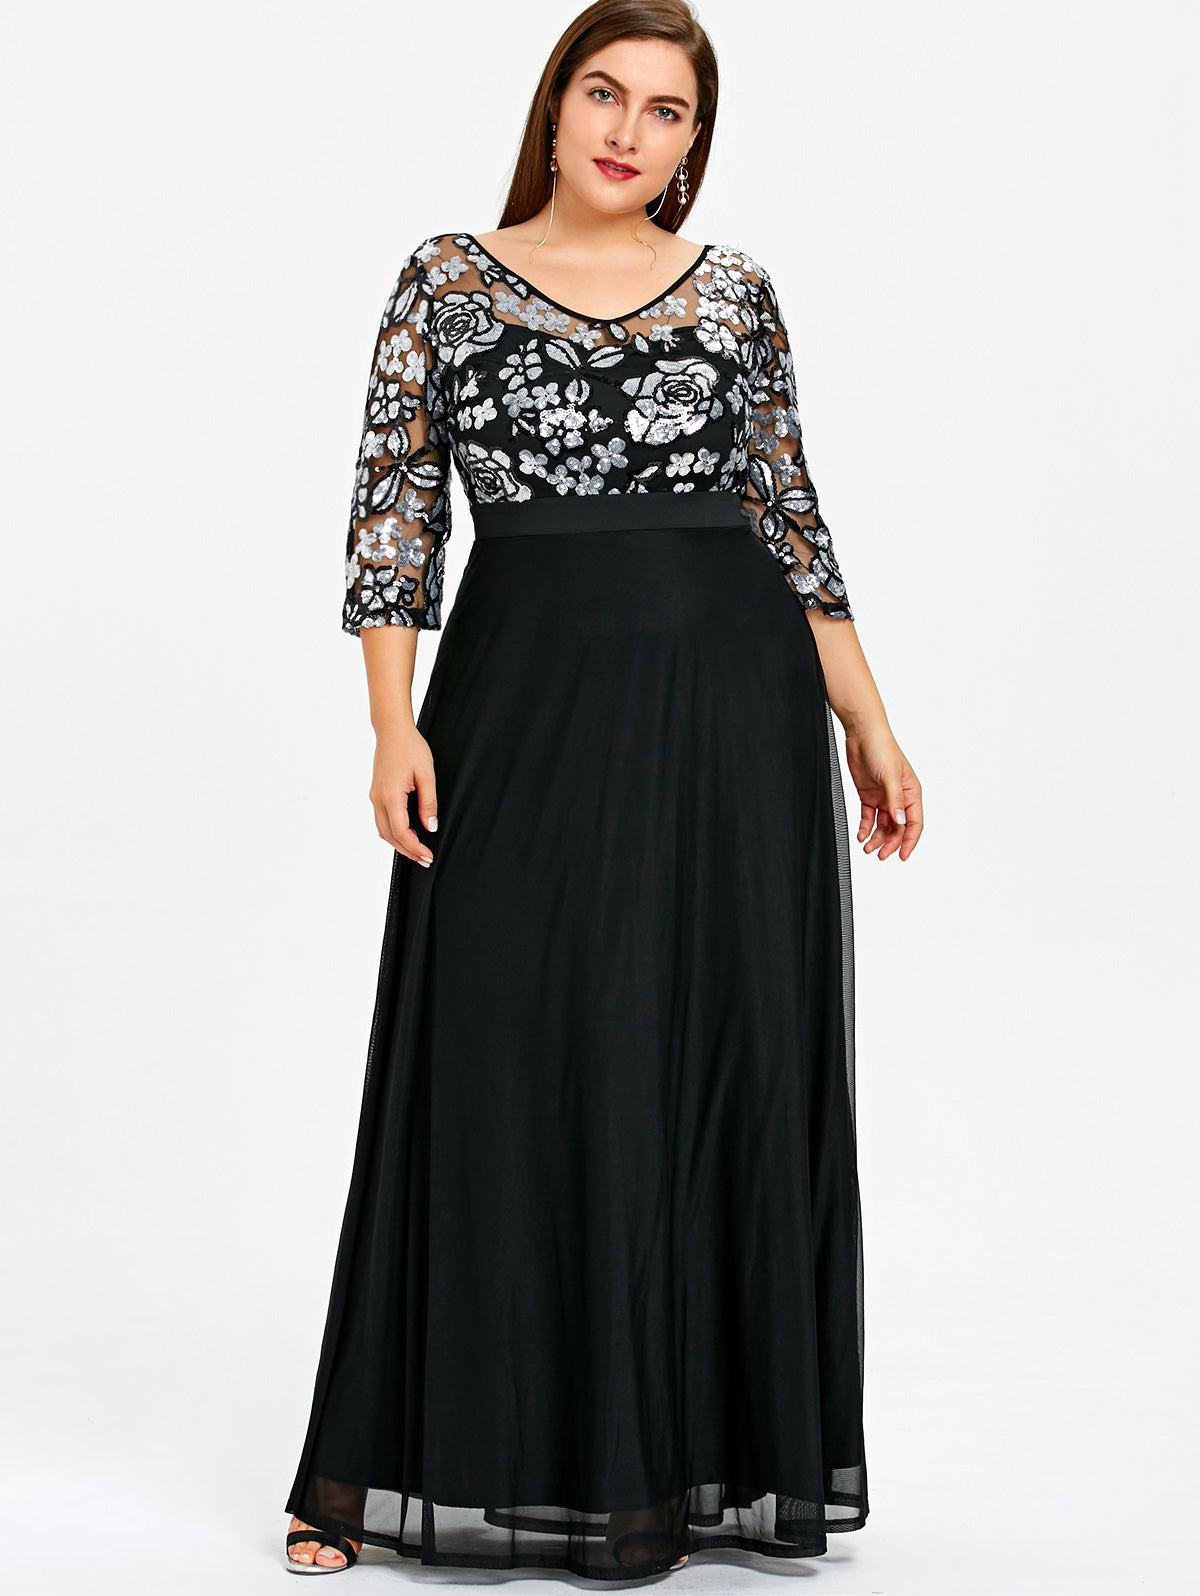 Plus Size Long Dress Women Sequined Floral Dress Robe Elegant Lace Formal